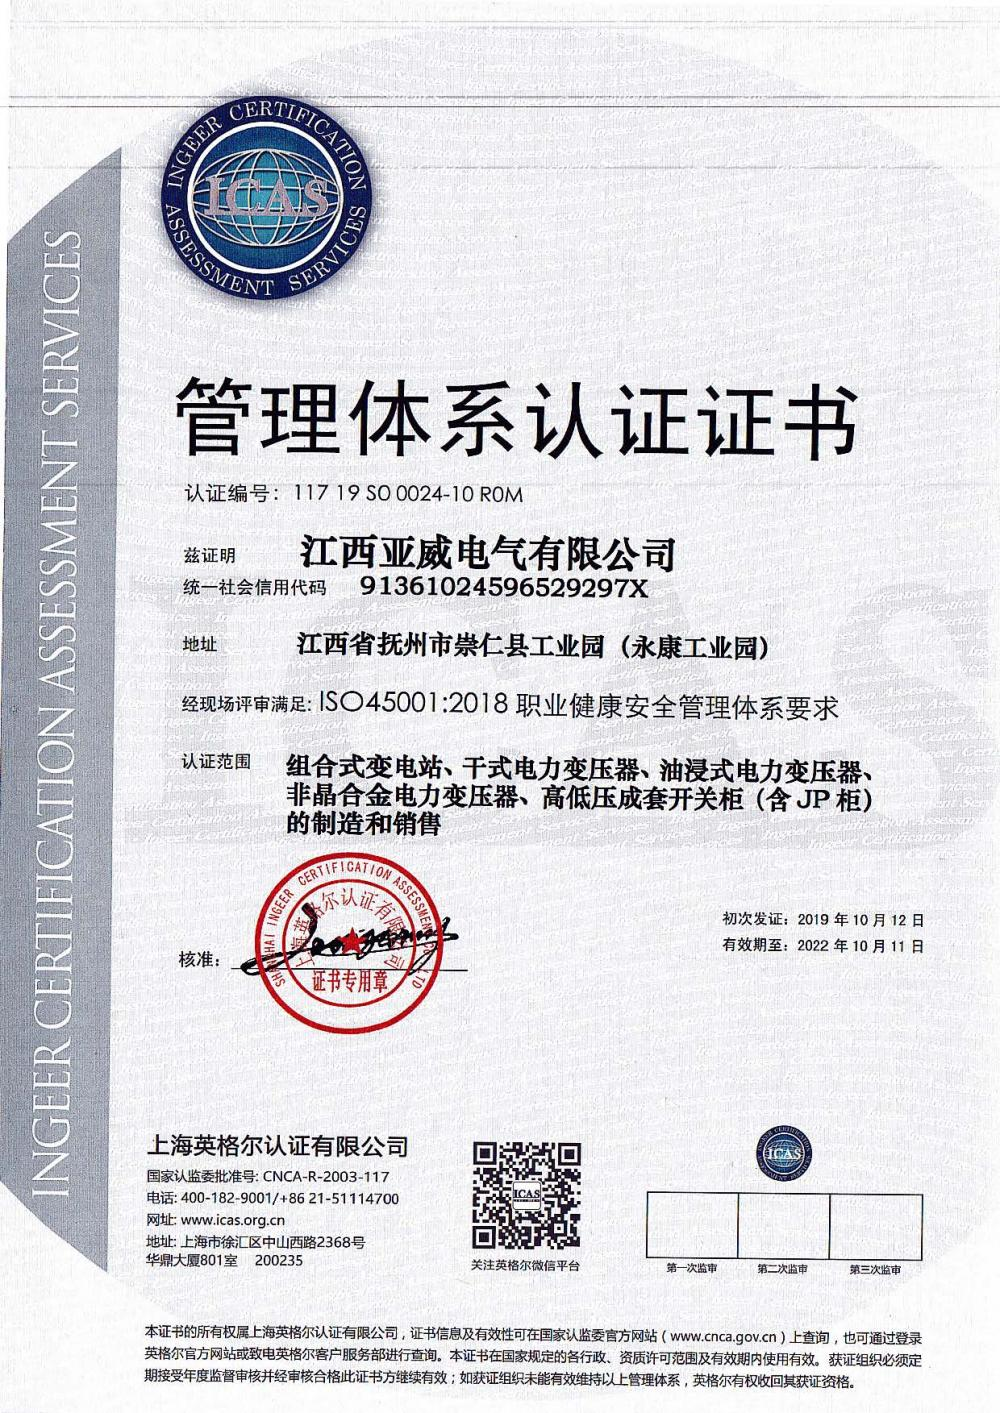 China occupational health and safety management system certification